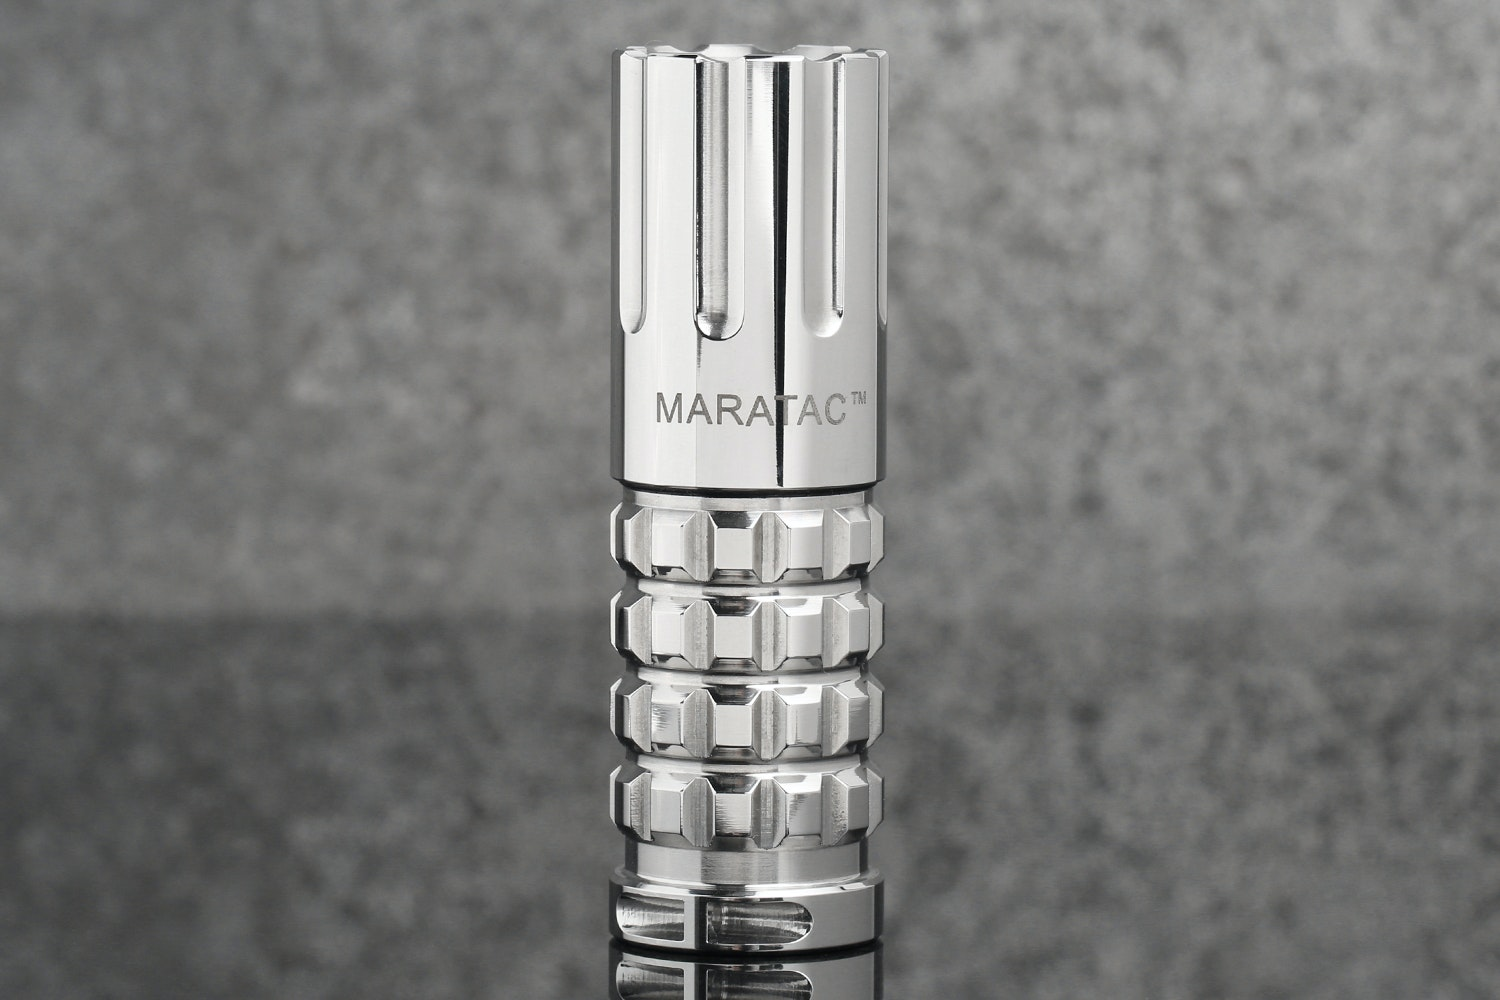 Maratac CR-123 Stainless Steel Flashlight